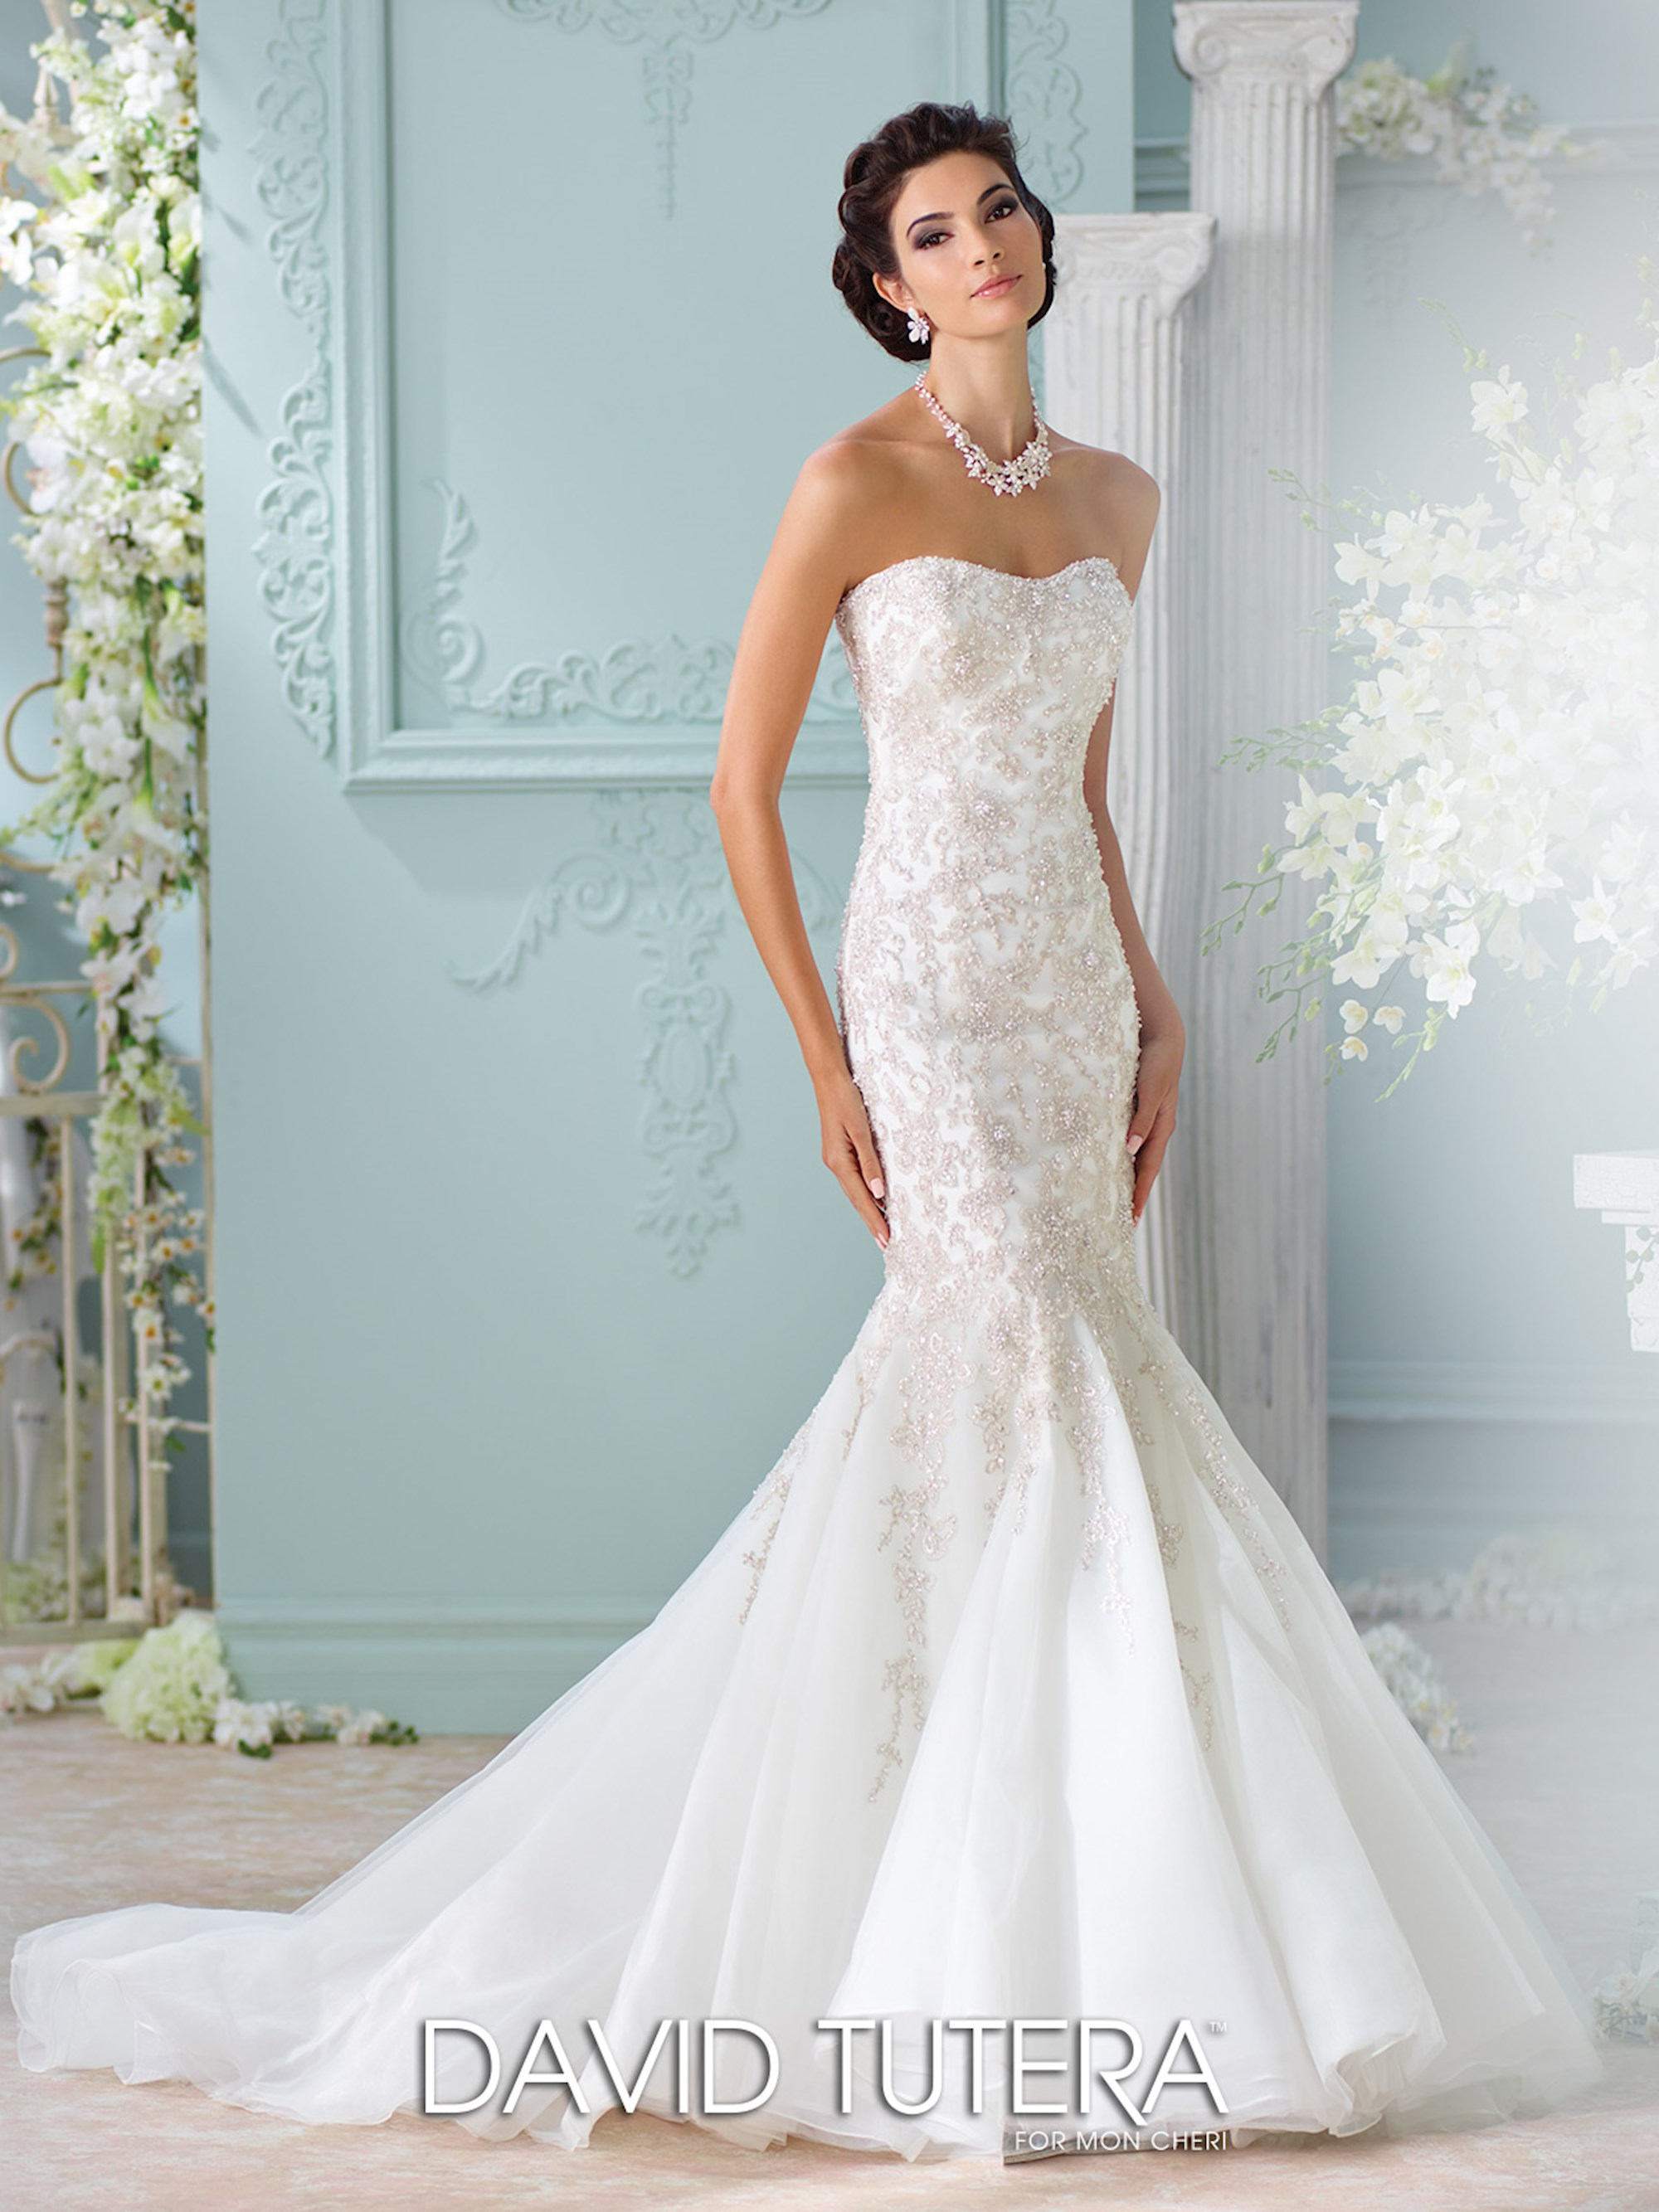 Pretty Wedding Dress Shop Guildford Contemporary - Wedding Ideas ...